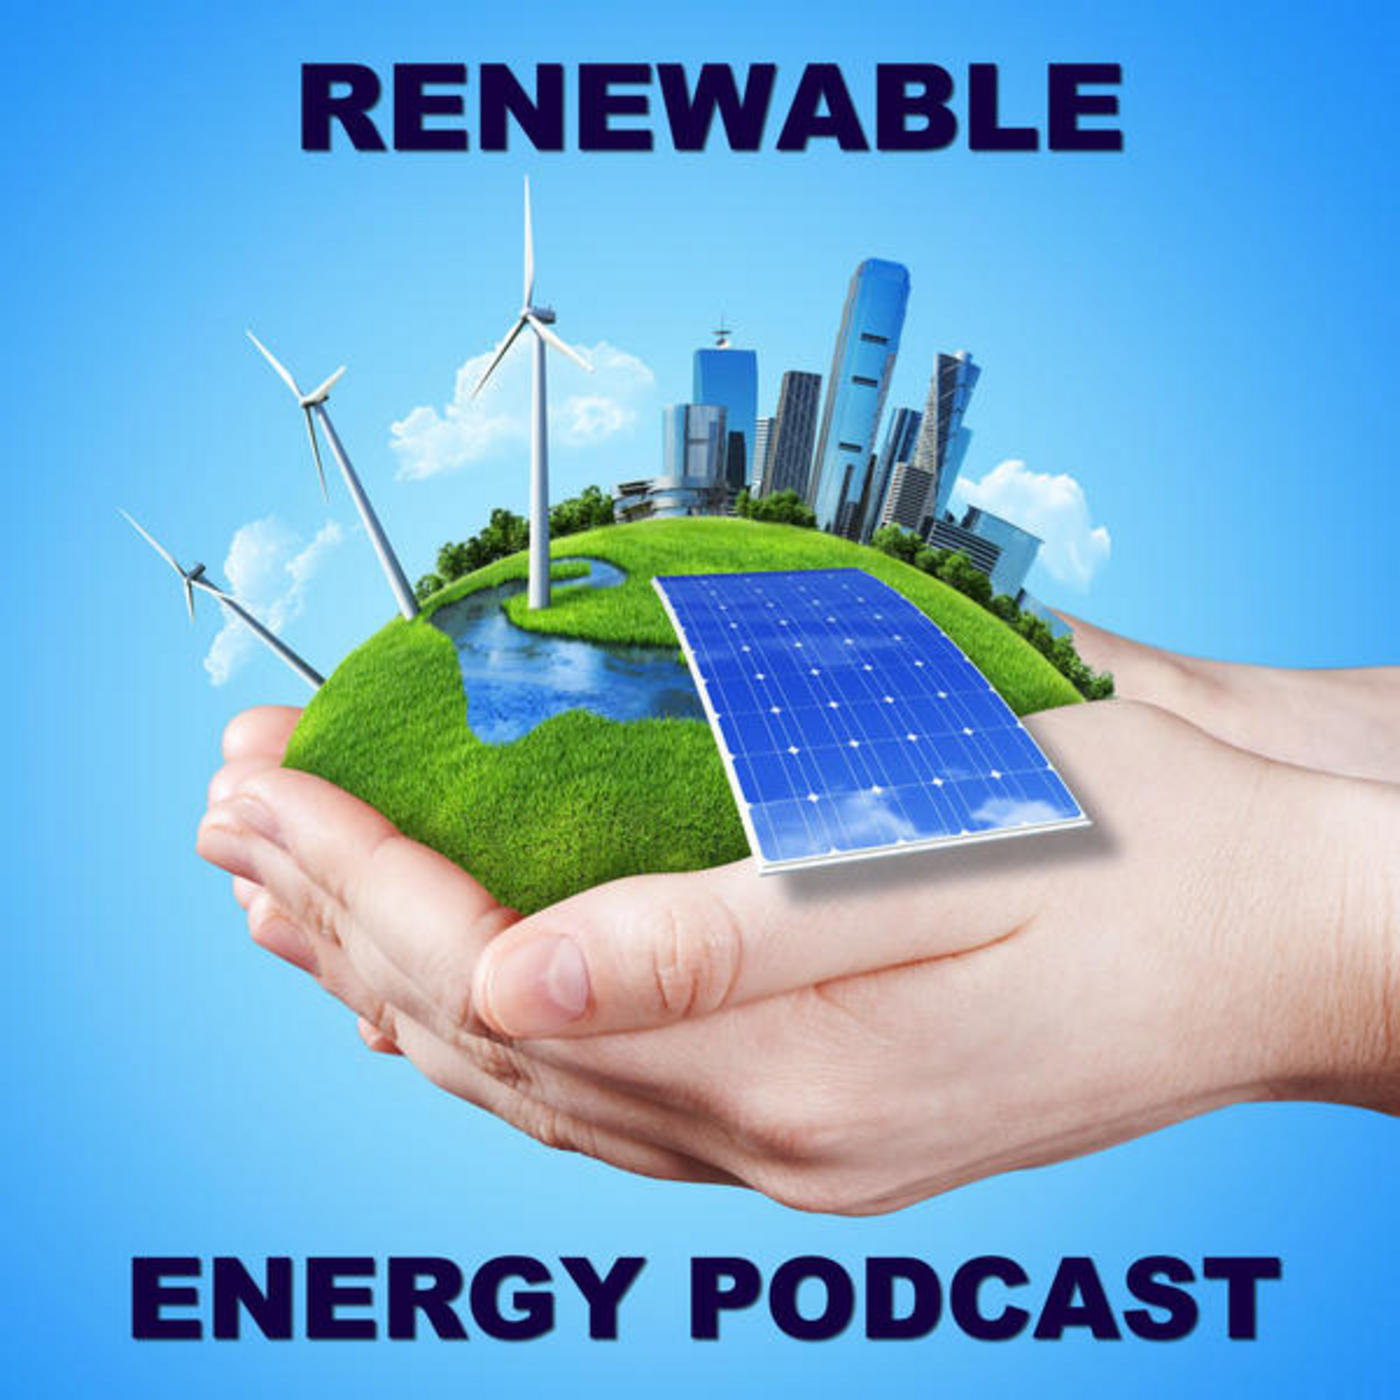 united states should be focusing in renewable energy